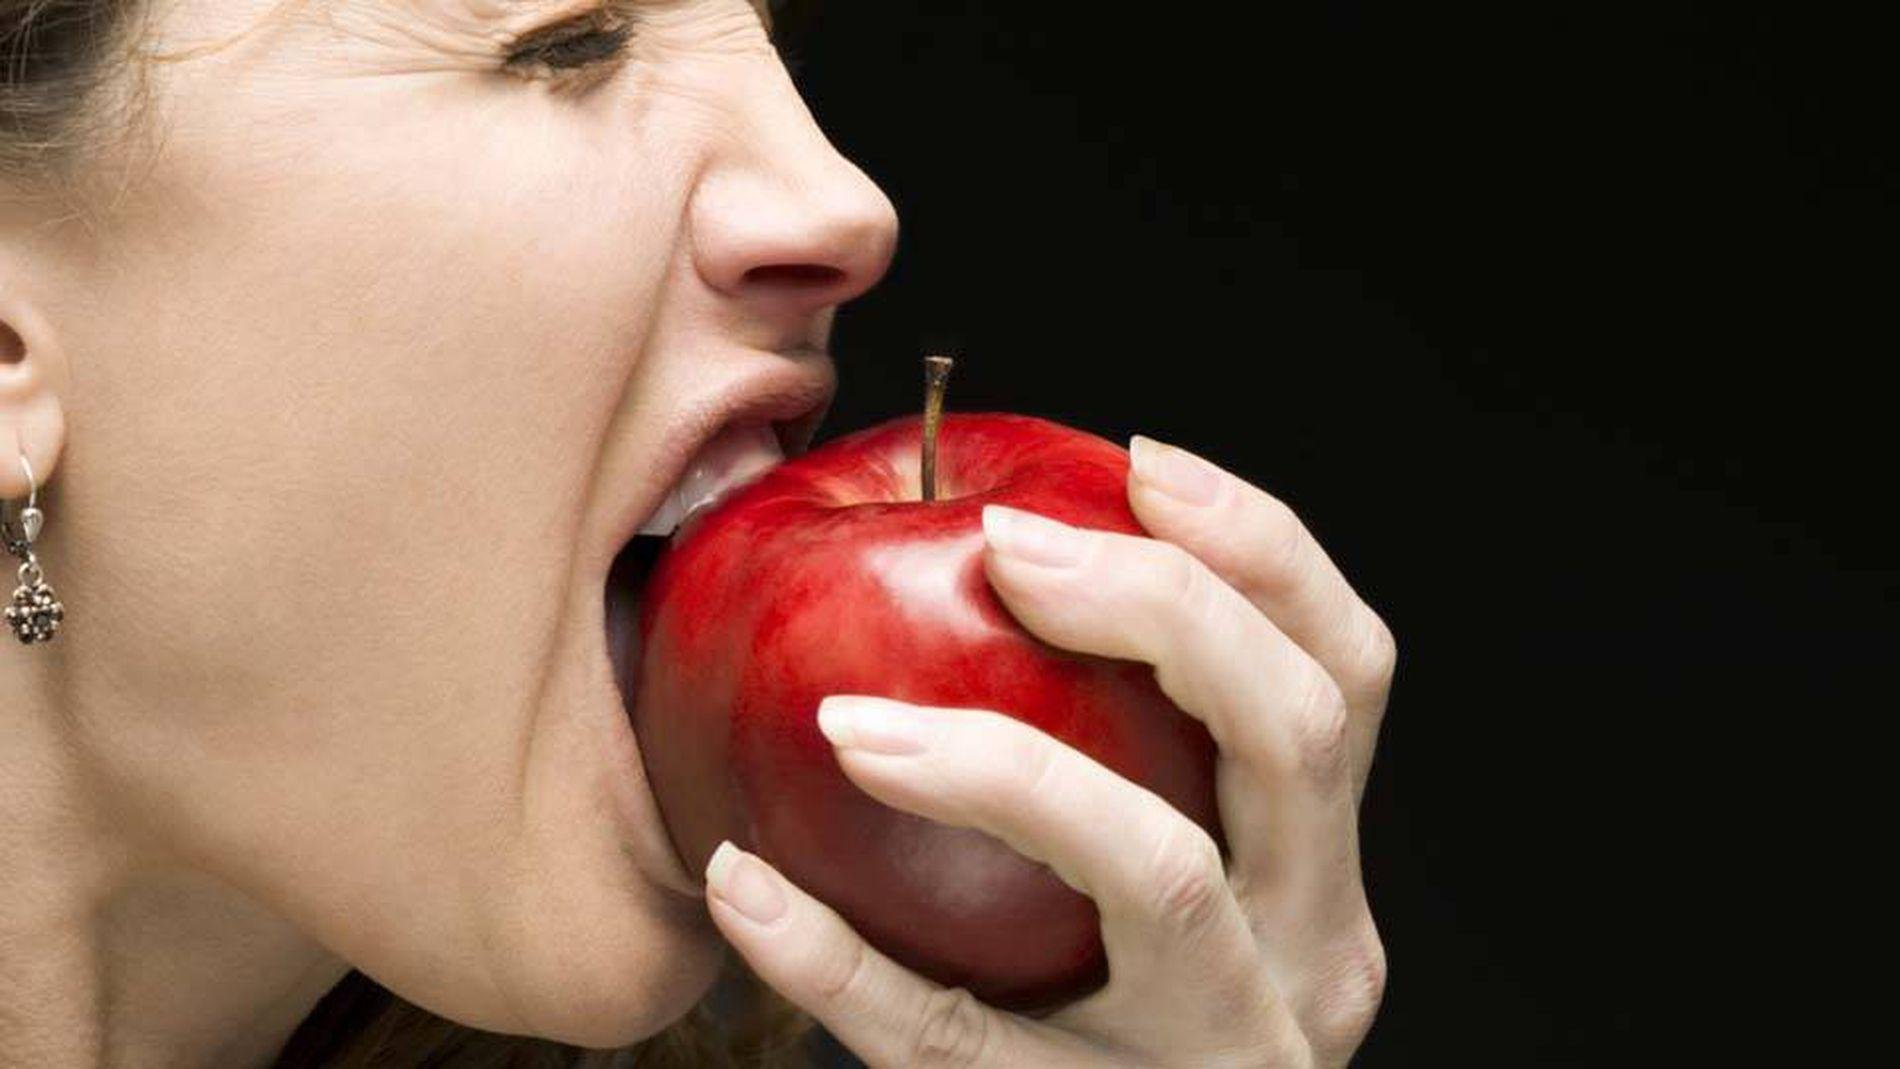 How Many Apples Can A Diabetic Eat Per Day